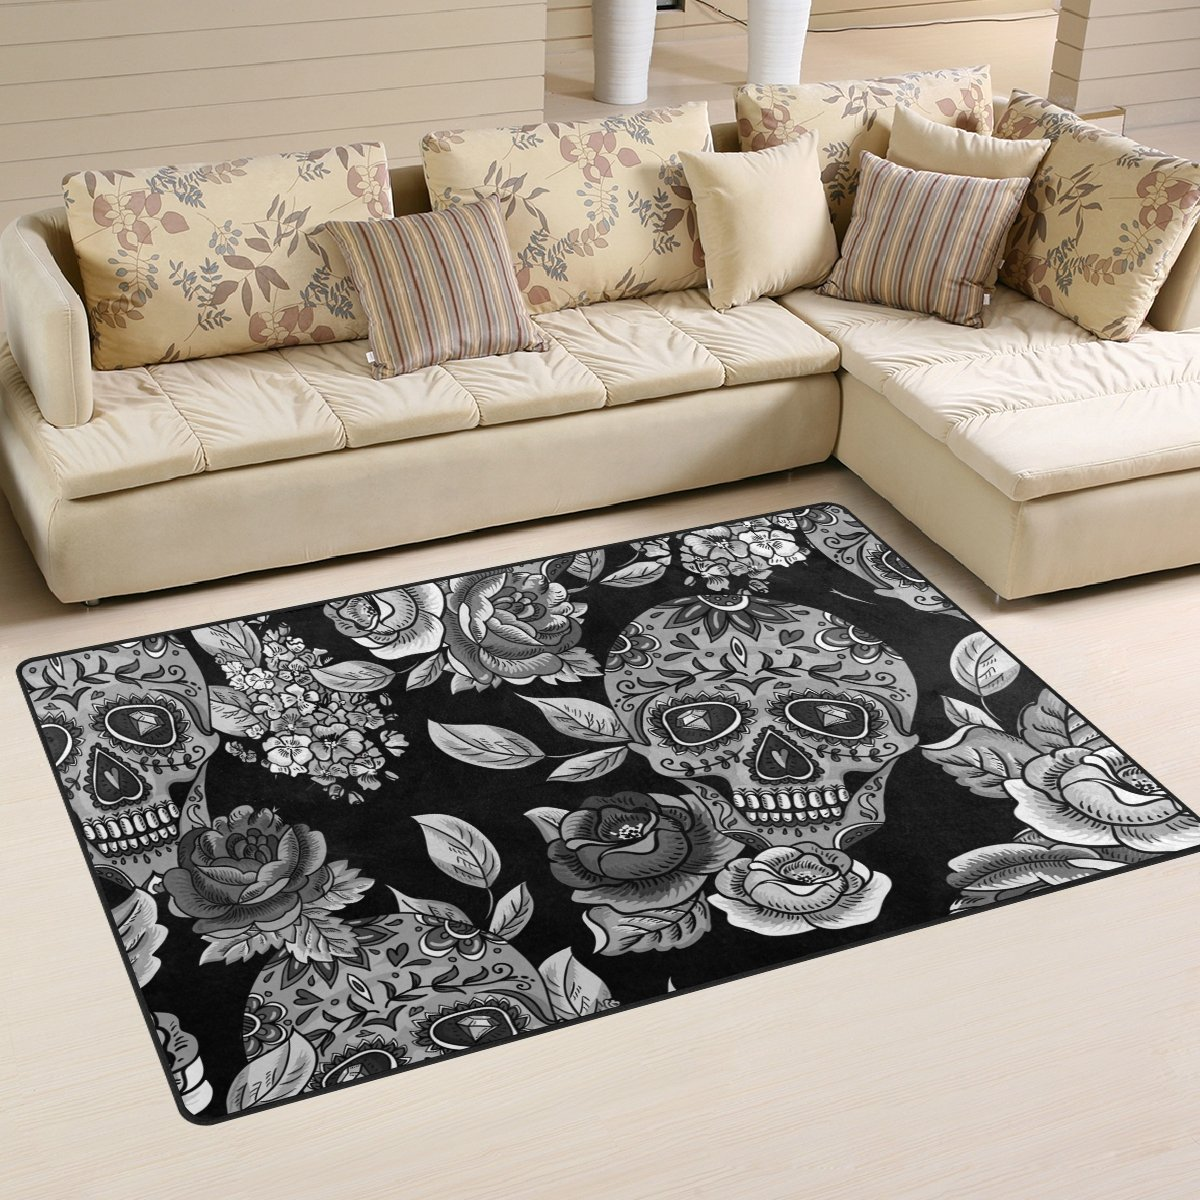 31 X 20 Inch Material Cotton And Fabric Highly Unique Versatile Area Rug Stain Resistant Easy To Vacuum Perfect For Any Room Decor